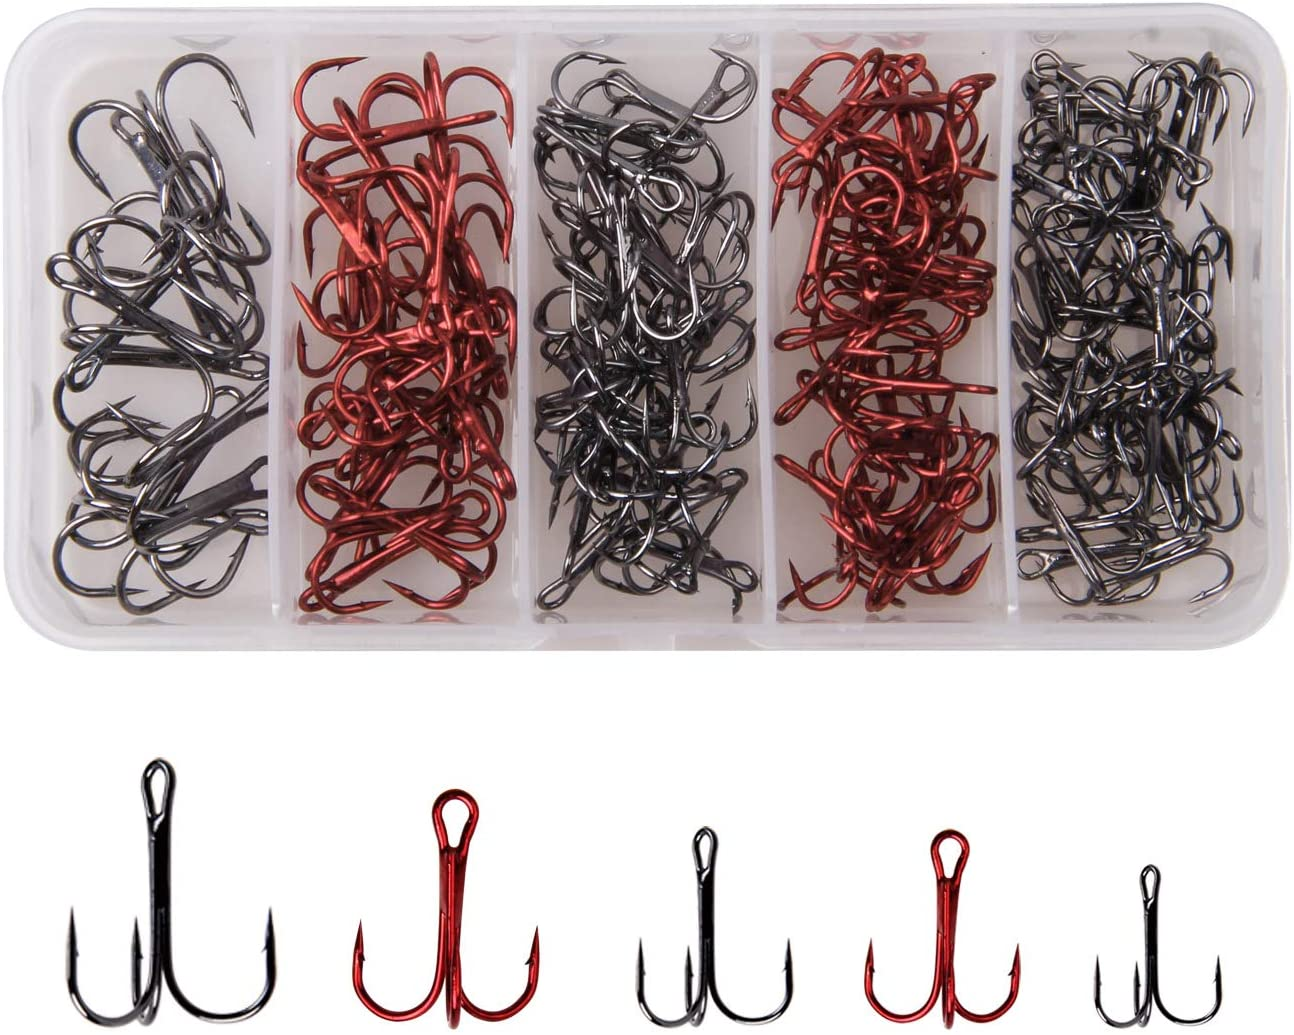 Fishing Treble Hooks Kit High Carbon Steel Strong Sharp Round Bend Fish Hooks for Hard Baits Lures 130pcs Tackle Box